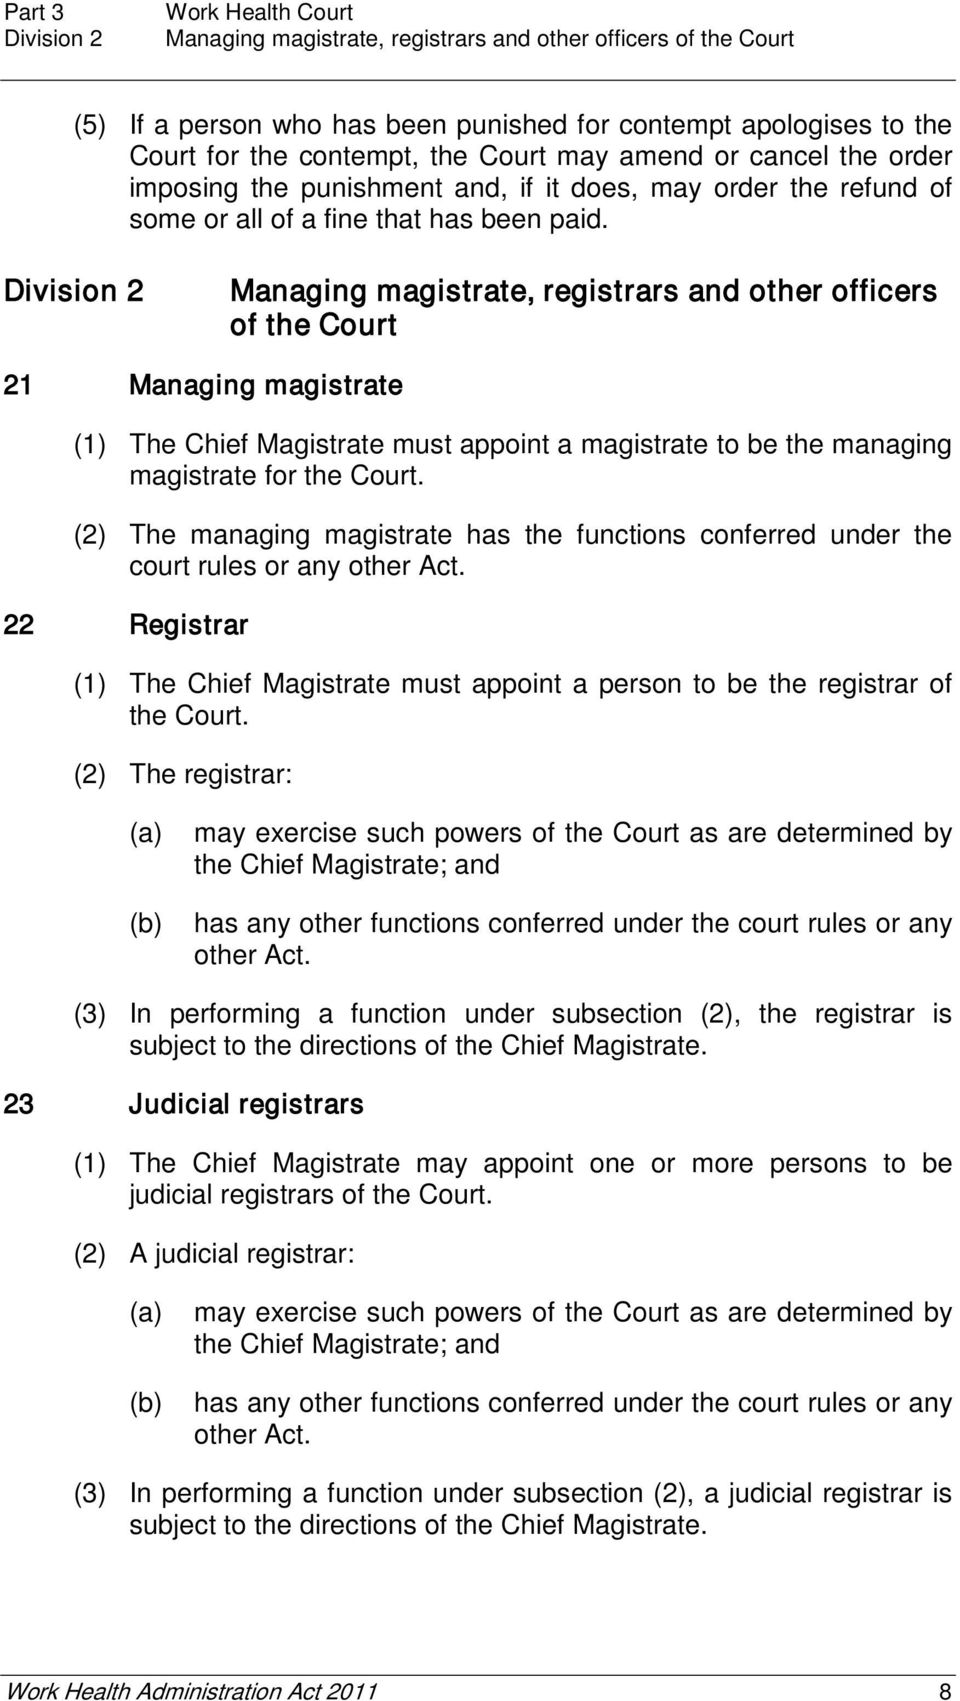 Division 2 Managing magistrate, registrars and other officers of the Court 21 Managing magistrate (1) The Chief Magistrate must appoint a magistrate to be the managing magistrate for the Court.